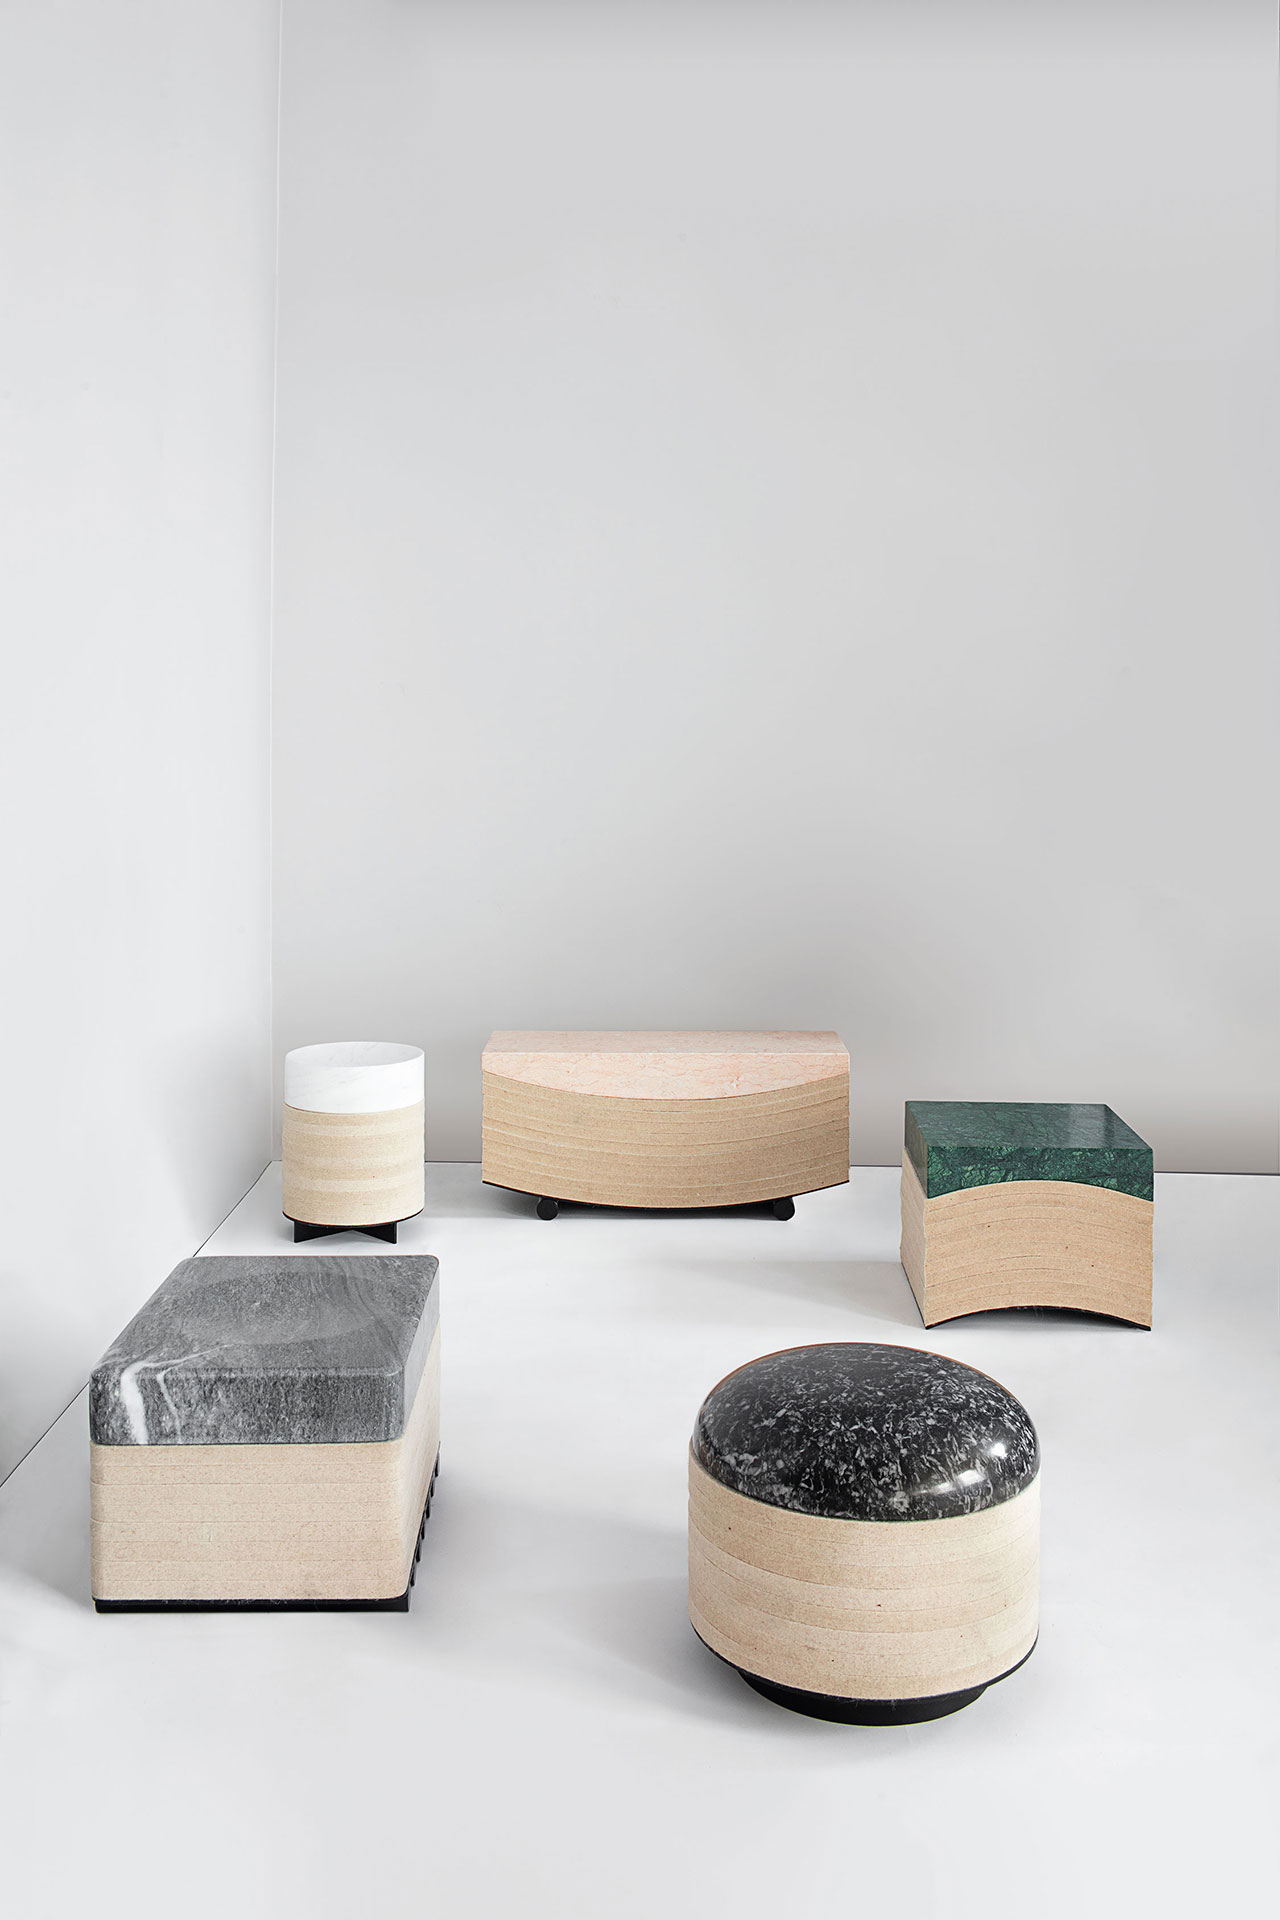 Objects of Common Interest, Layer Stools, 2016. Marble, Wool Felt, Steel. Photo by Matthieu Salvaing.